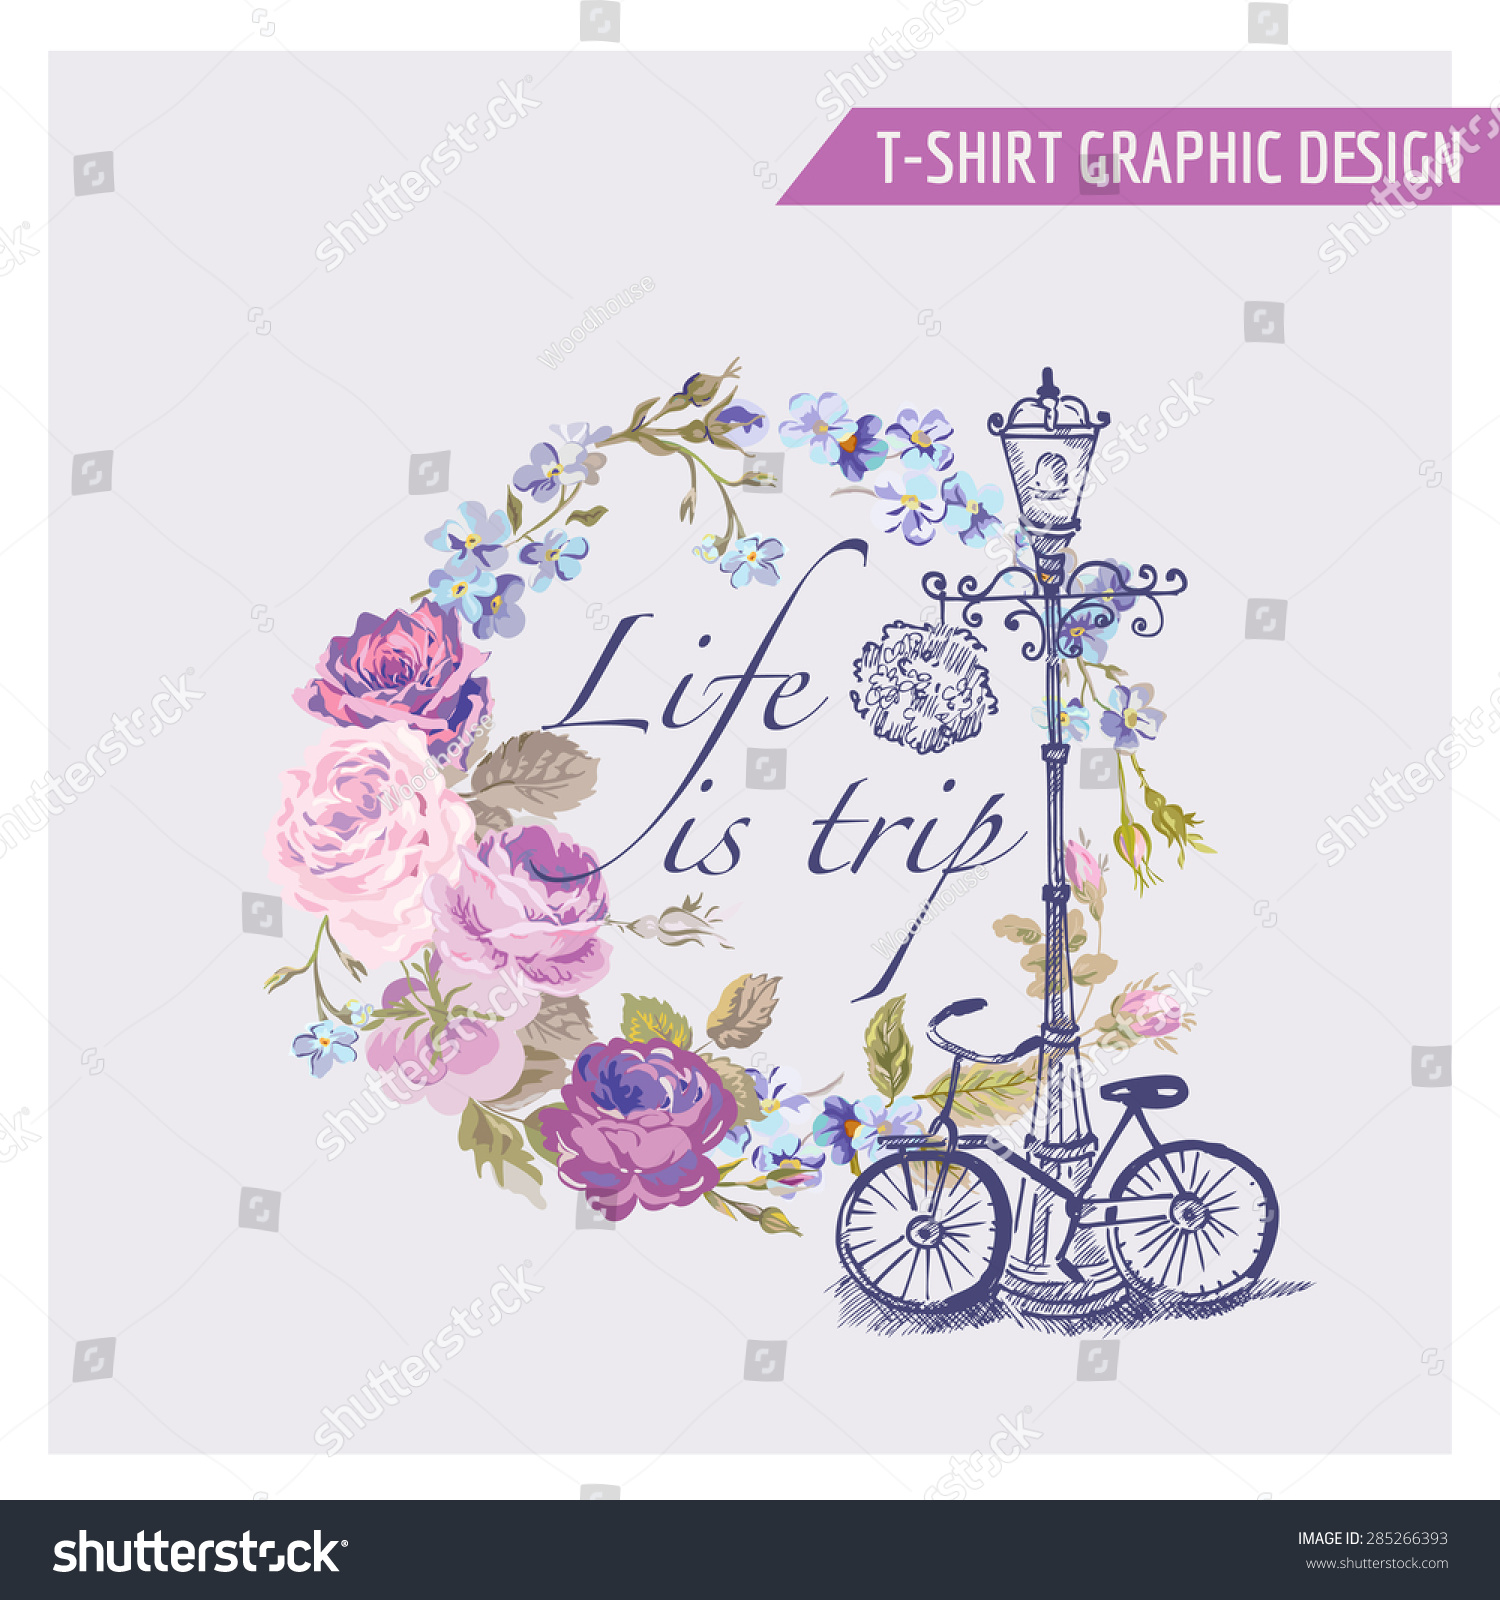 Floral shabby chic graphic design tshirt stock vector for Shutterstock t shirt design